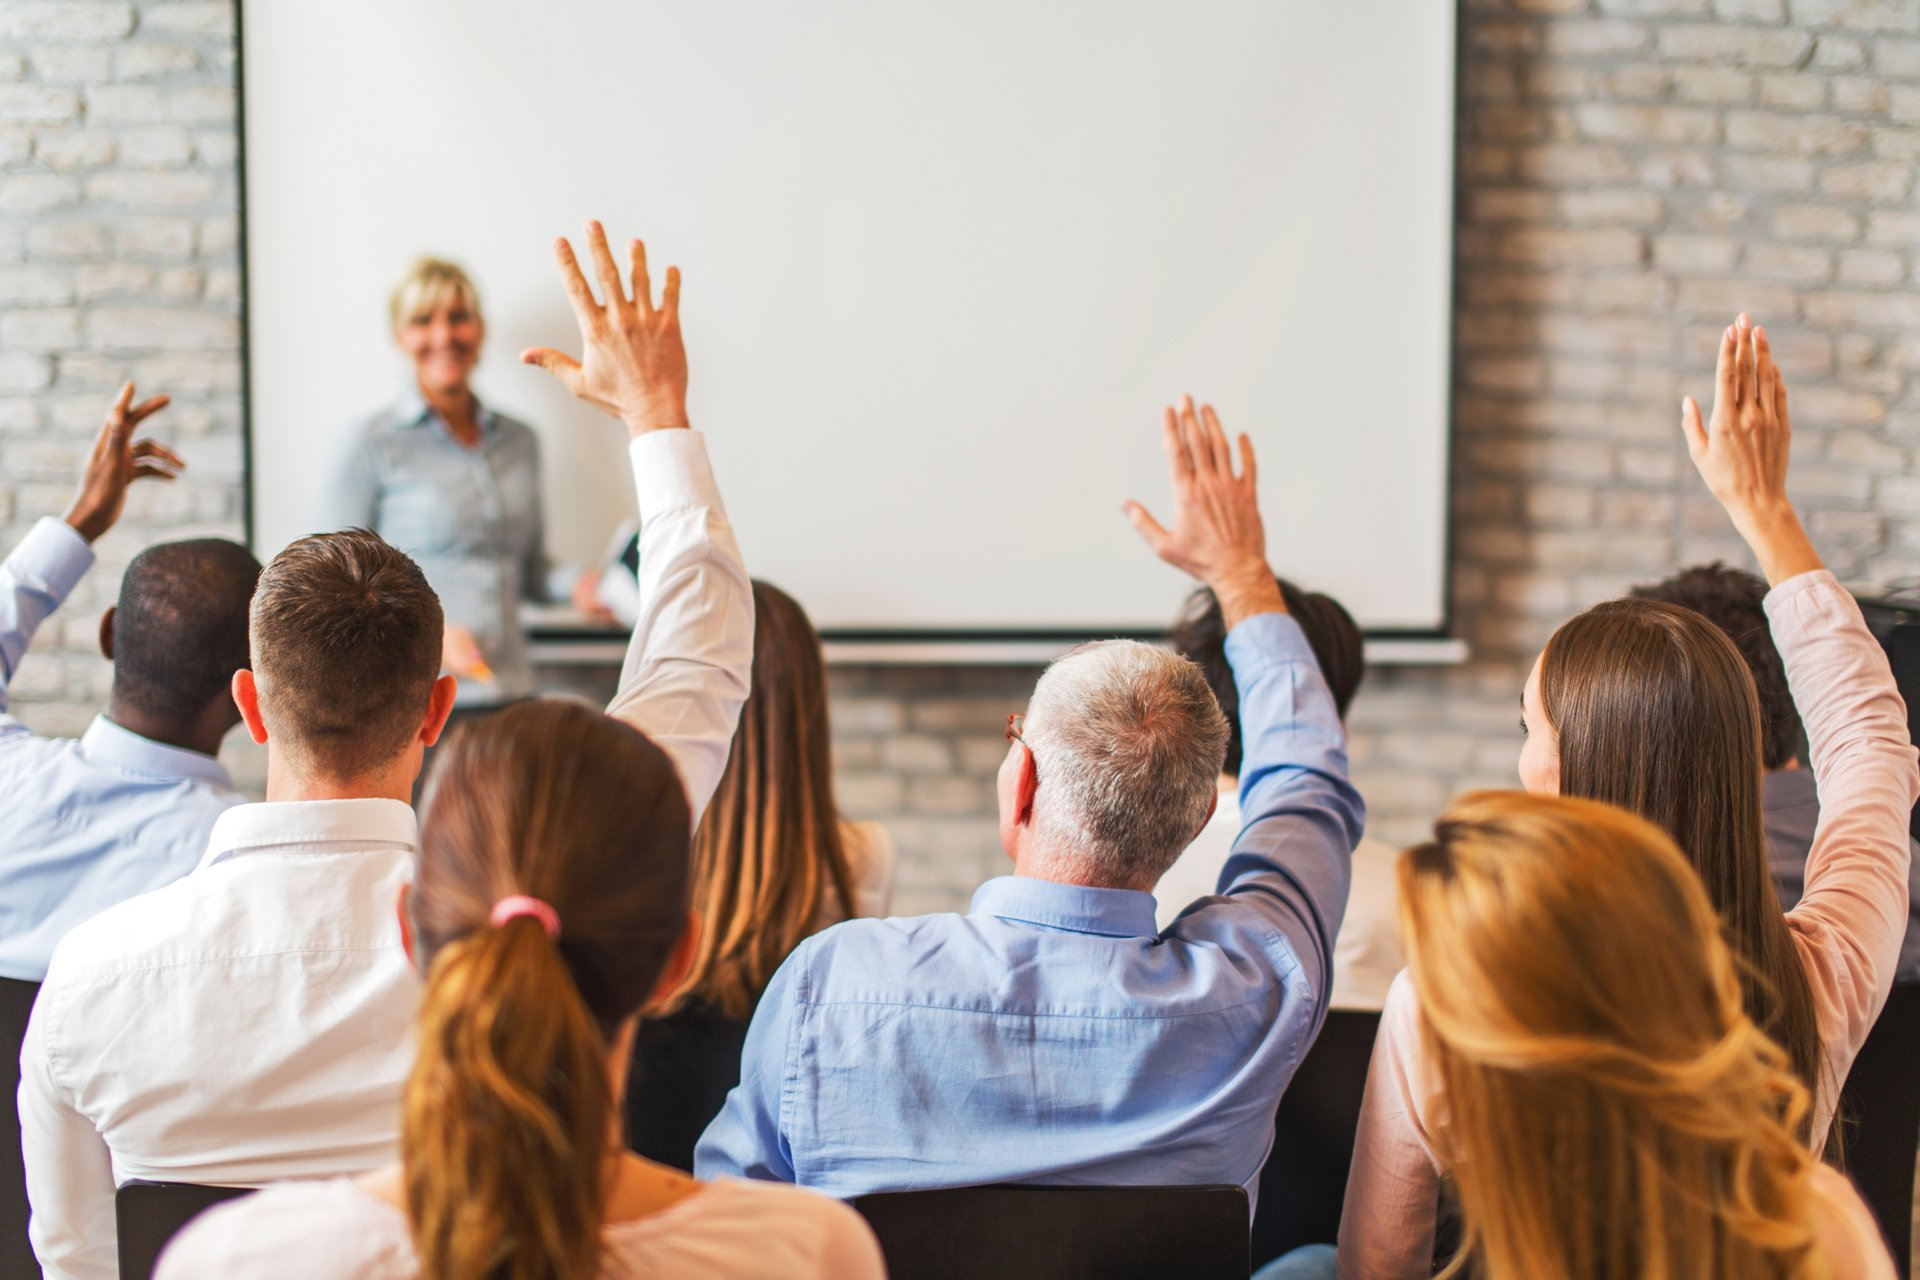 how to respond to live audience members, responding appropriately during panel discussions